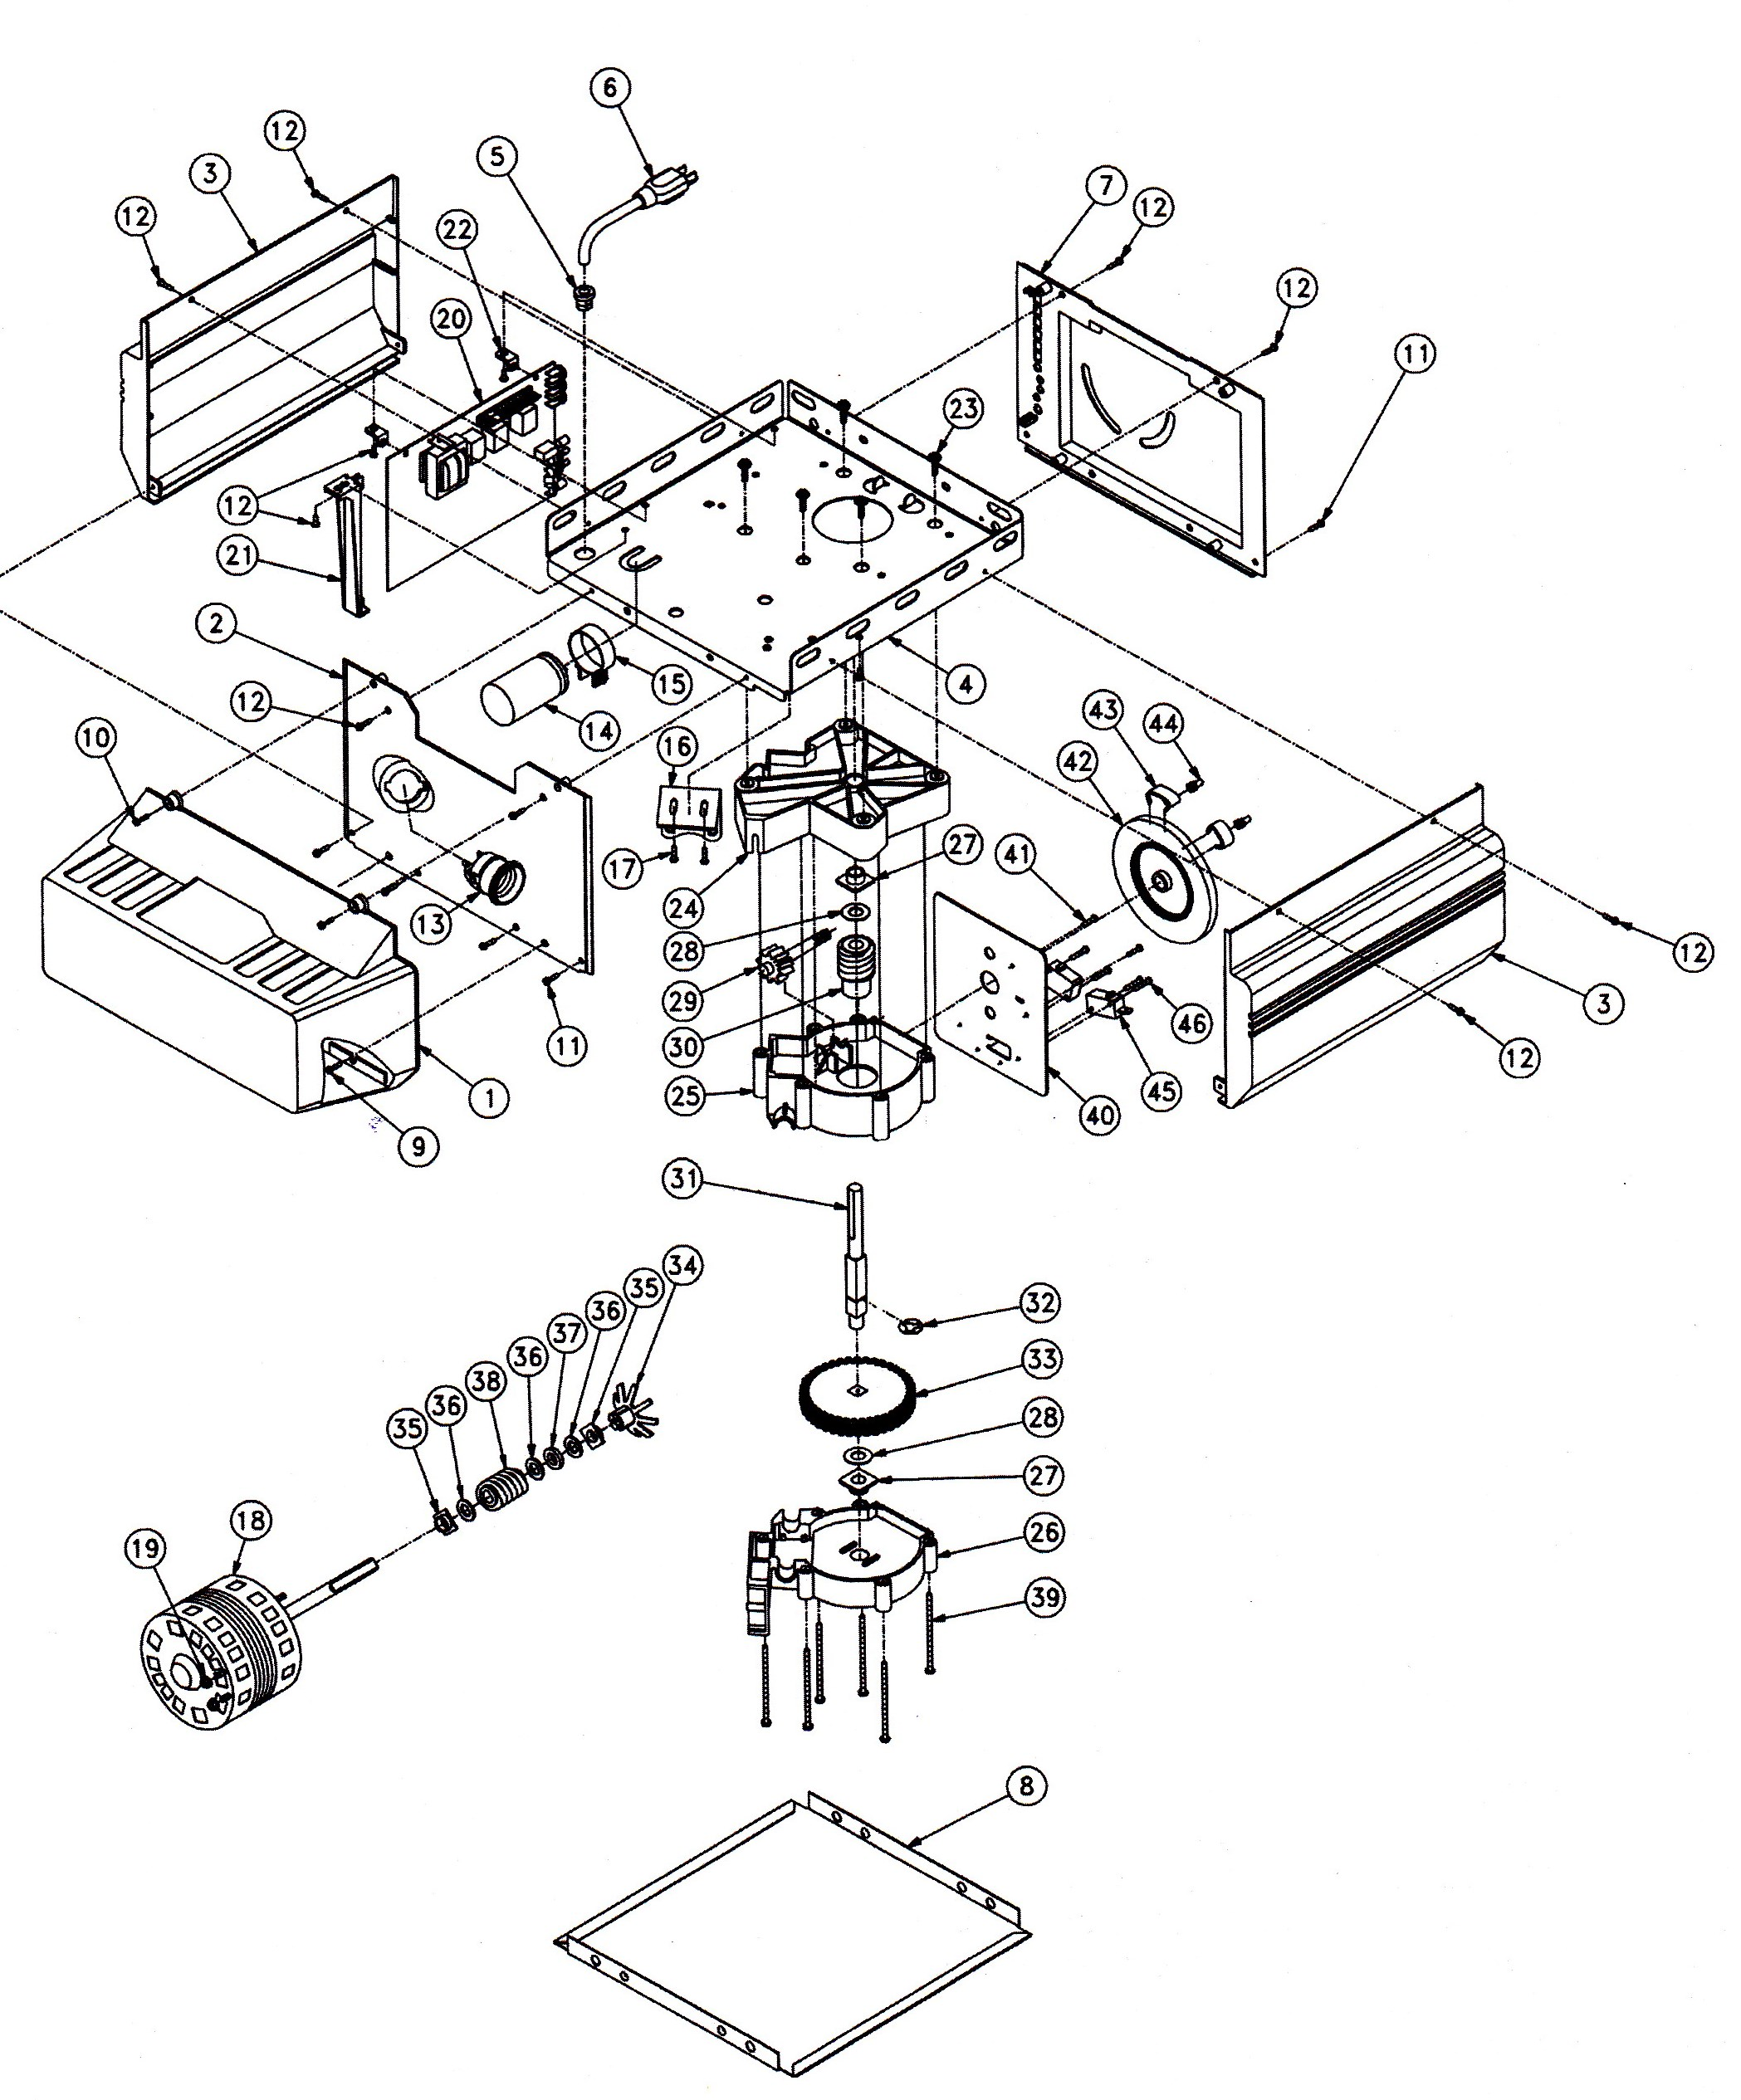 Magnificent Polk Audio Subwoofer Wiring Diagram How To Wire A Subwoofer To A Wiring Digital Resources Instshebarightsorg